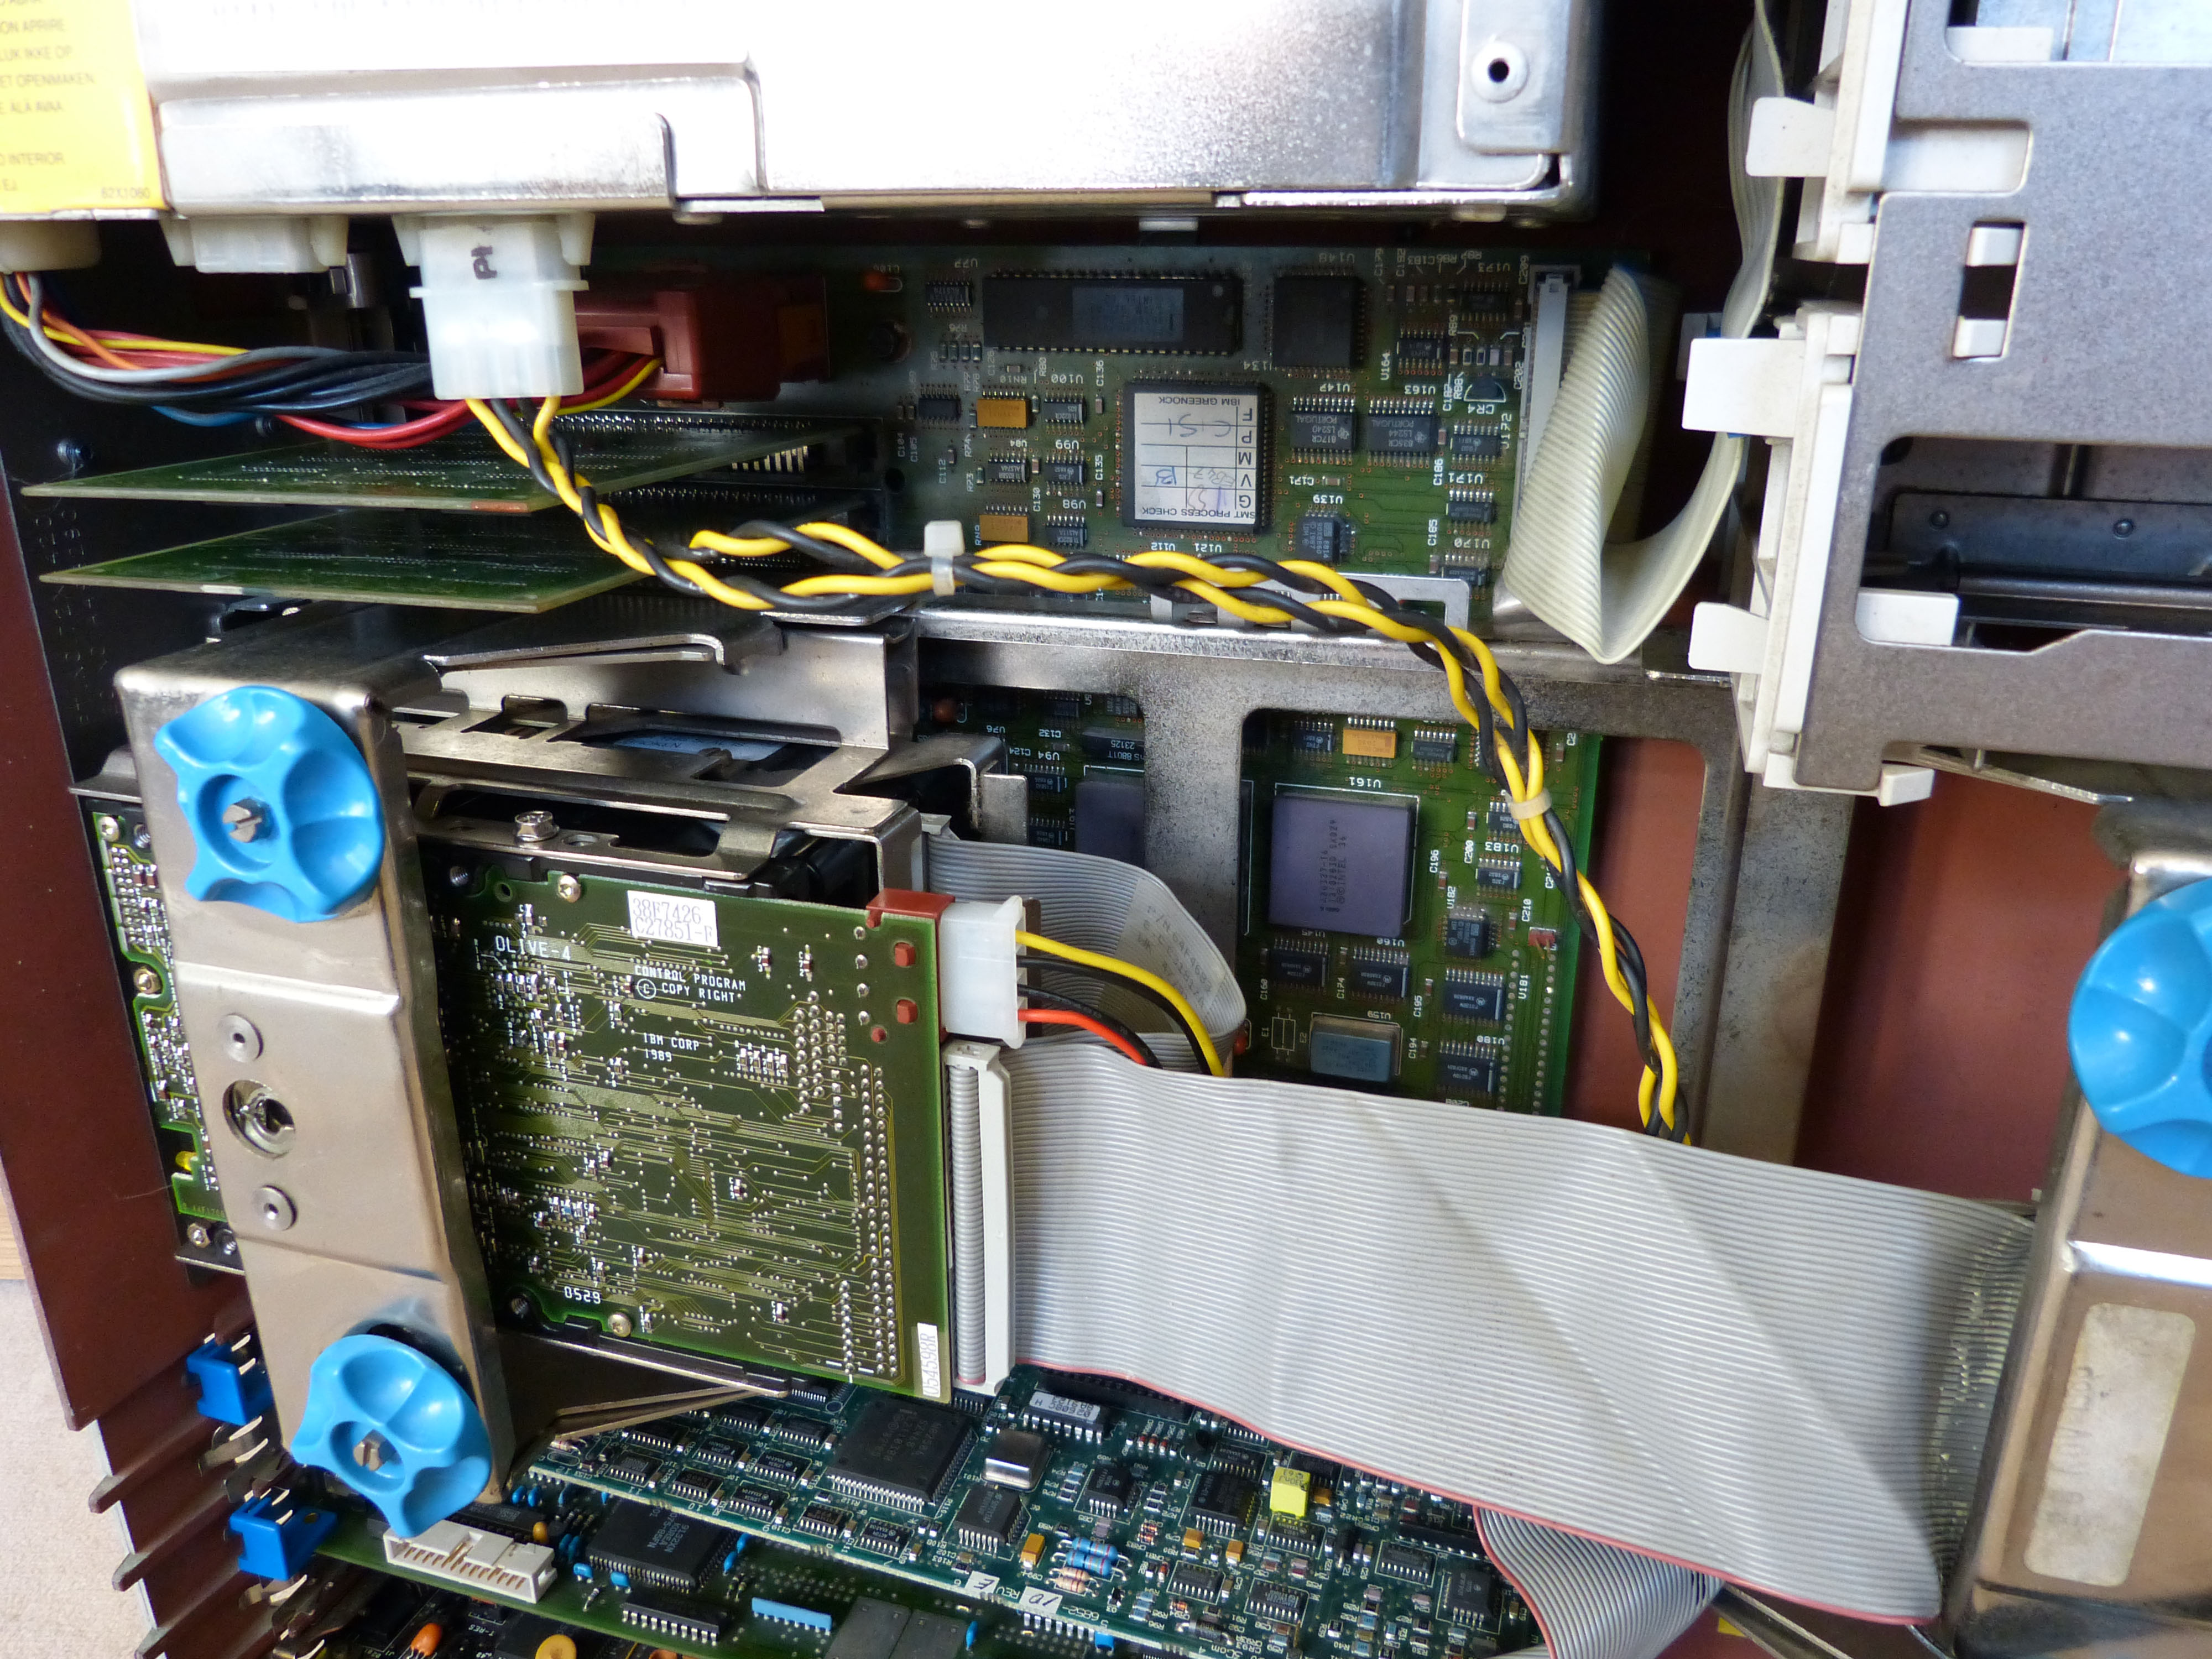 IBM_PS2_inside_top.jpg